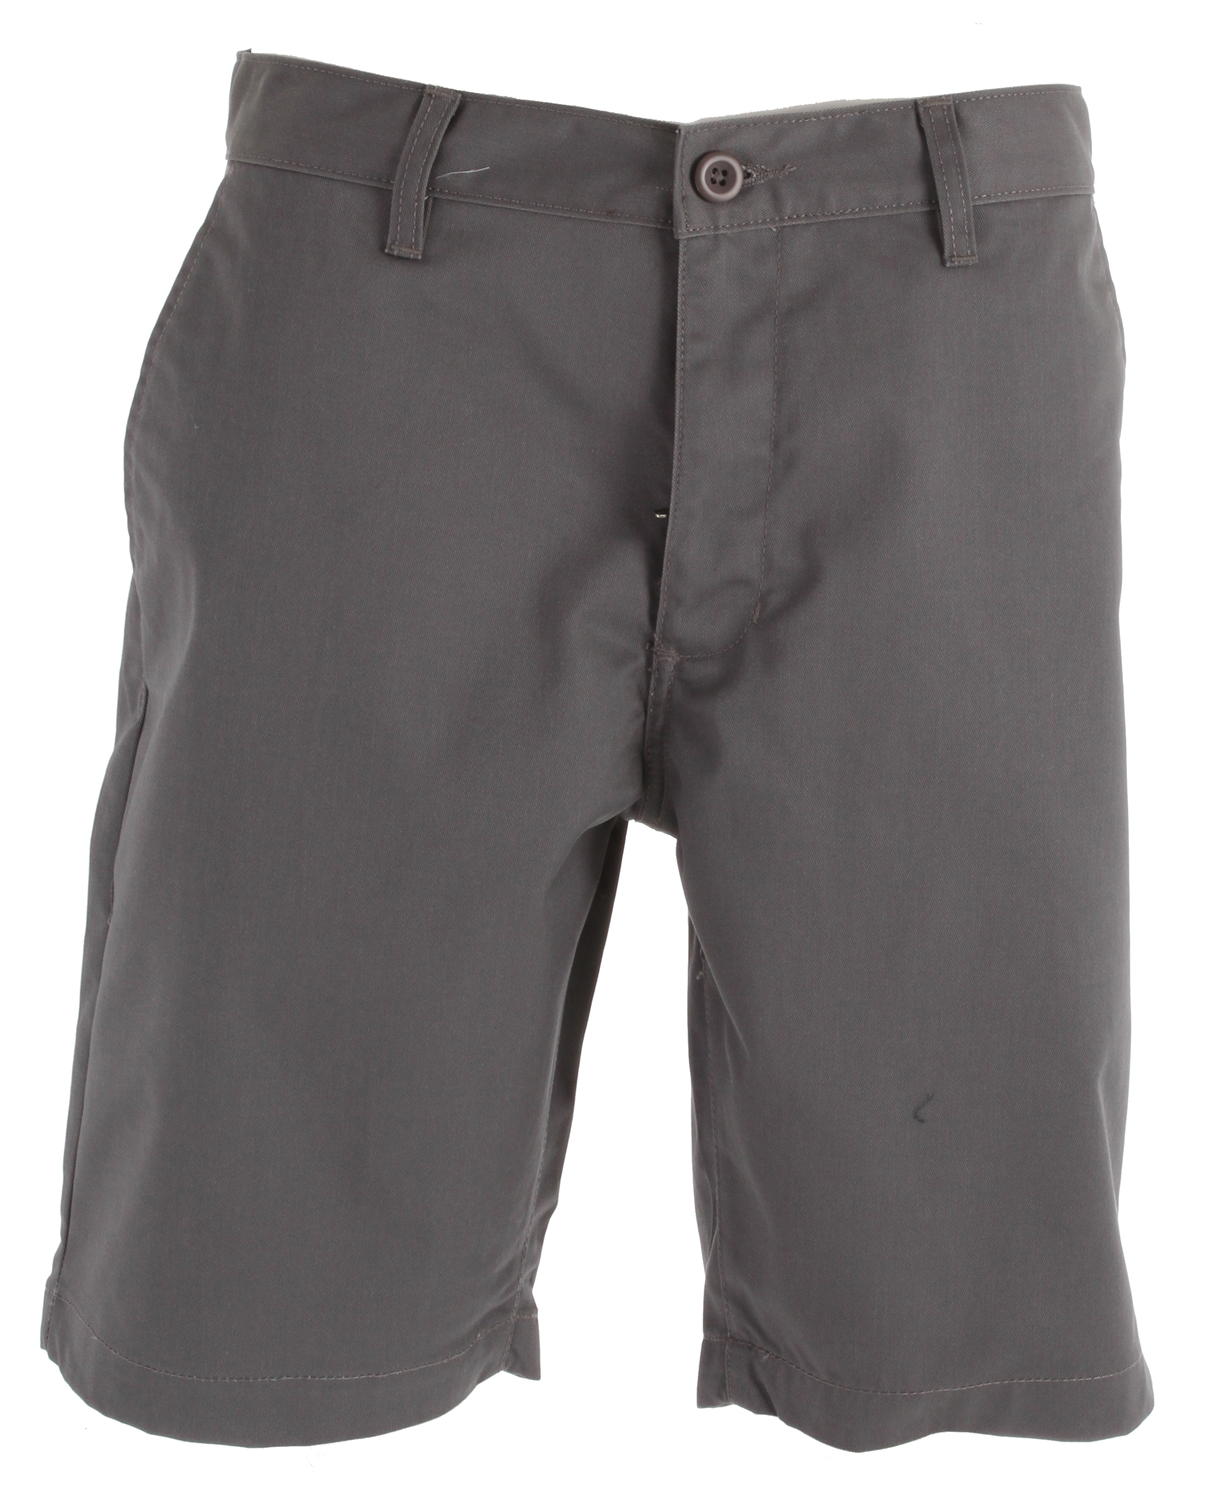 "Key Features of the RVCA Weekender Shorts: 65% polyester/35% cotton twill chino slack short Zipper fly with button closure Single welt pockets at back with RVCA solo label Slash pockets at front Outseam 20"" - $27.95"